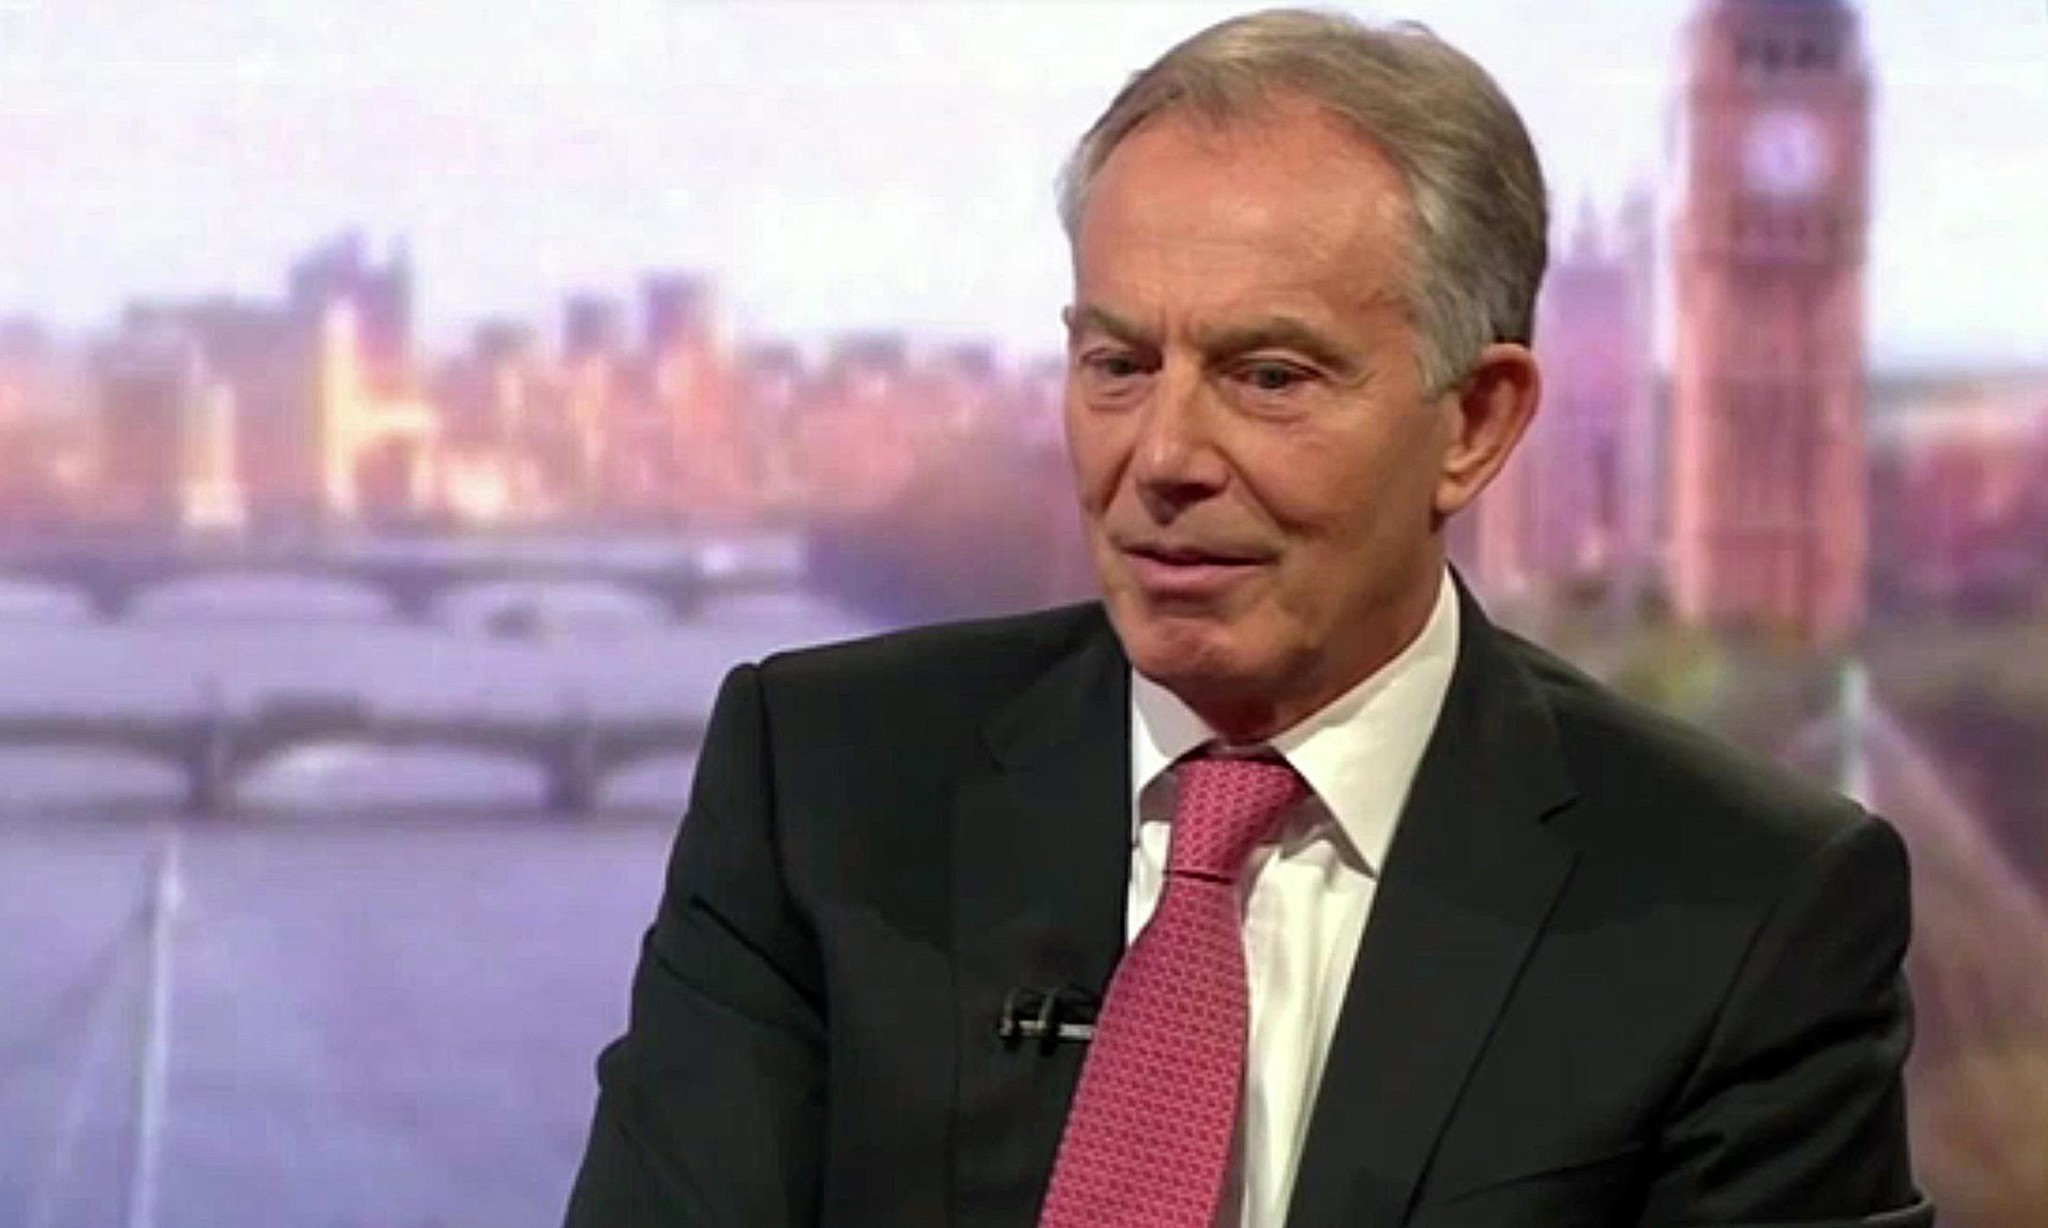 Chilcot won't accuse Blair of lying, says former PM's biographer